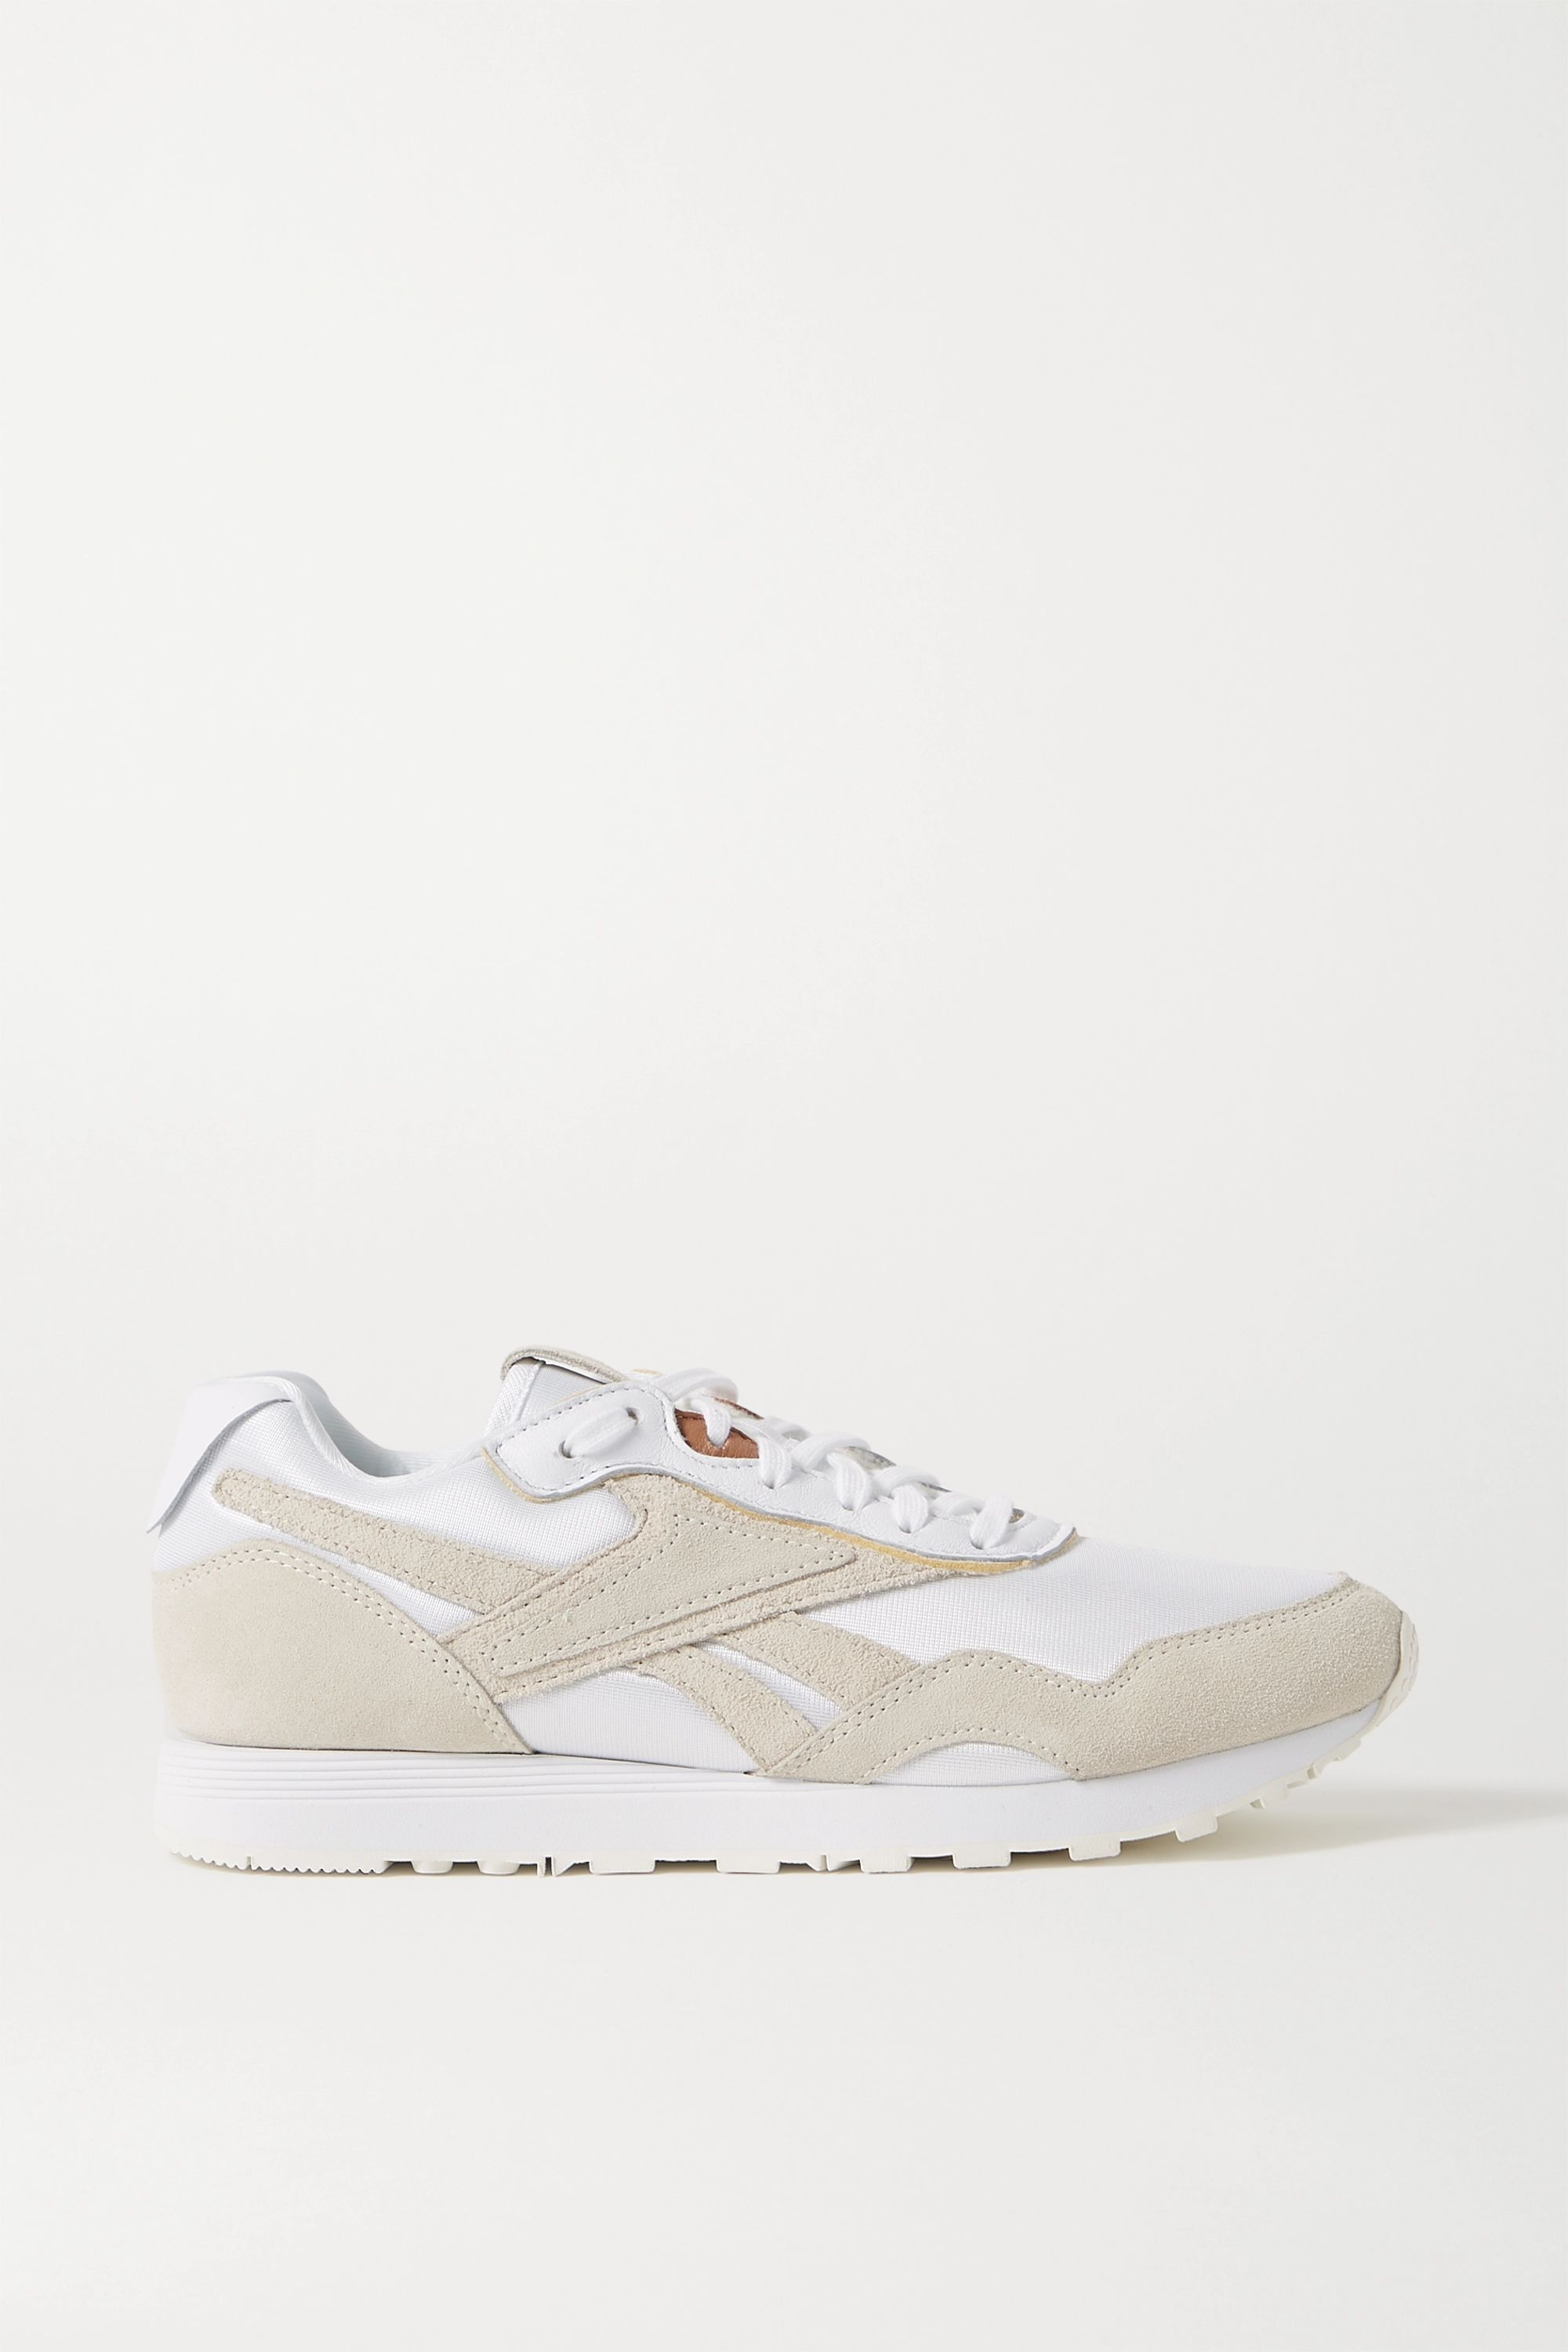 Antemano Trampolín corte largo  White Rapide mesh, suede and leather sneakers | Reebok X Victoria Beckham  in 2020 | Leather sneakers, Reebok sneakers, Beige sneakers